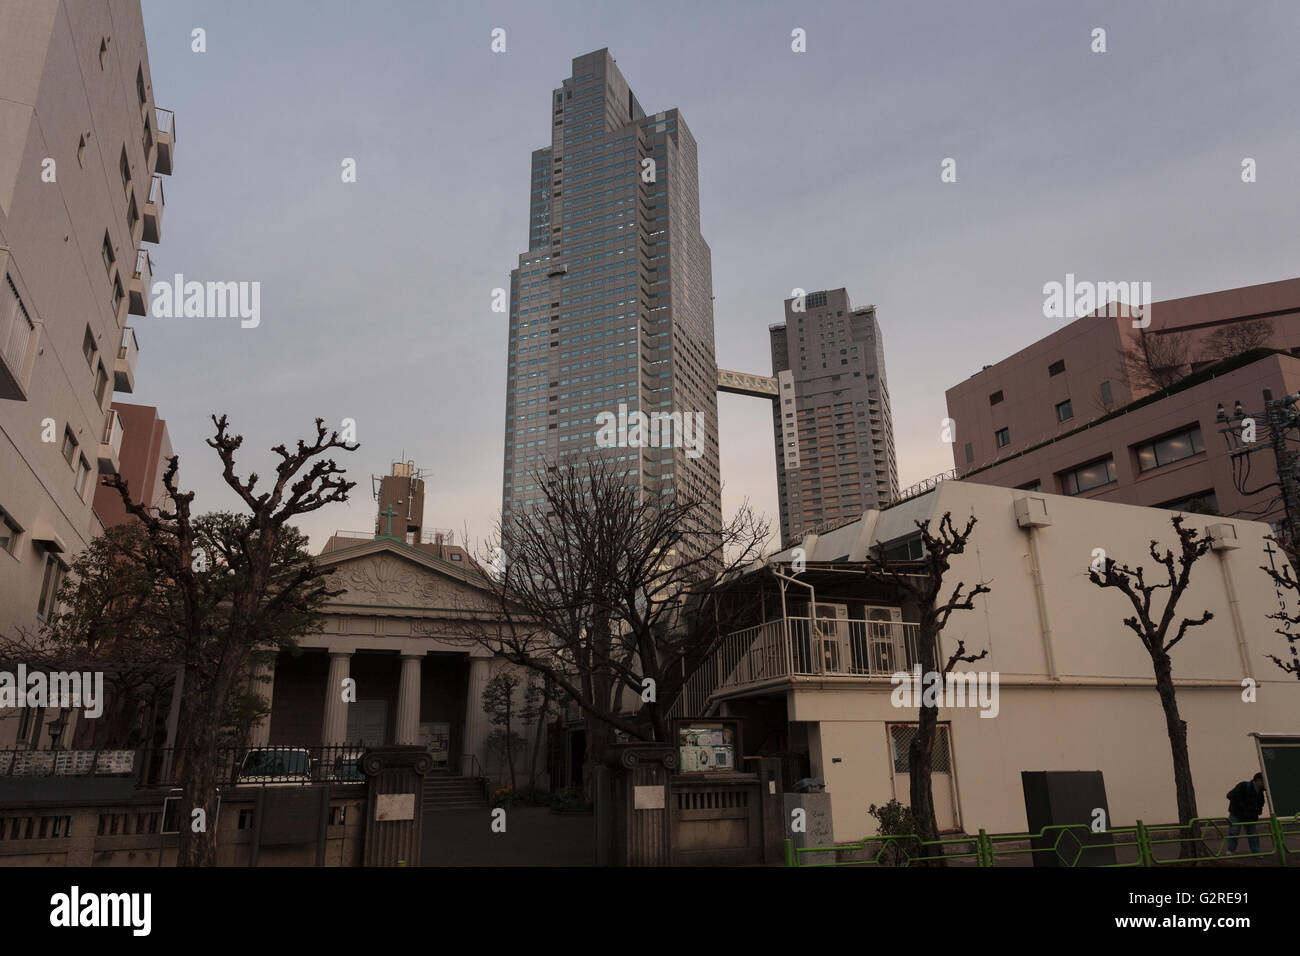 St Luke's Tower in Chuo Ward, Tokyo, Japan. Friday February 5th 2016 - Stock Image